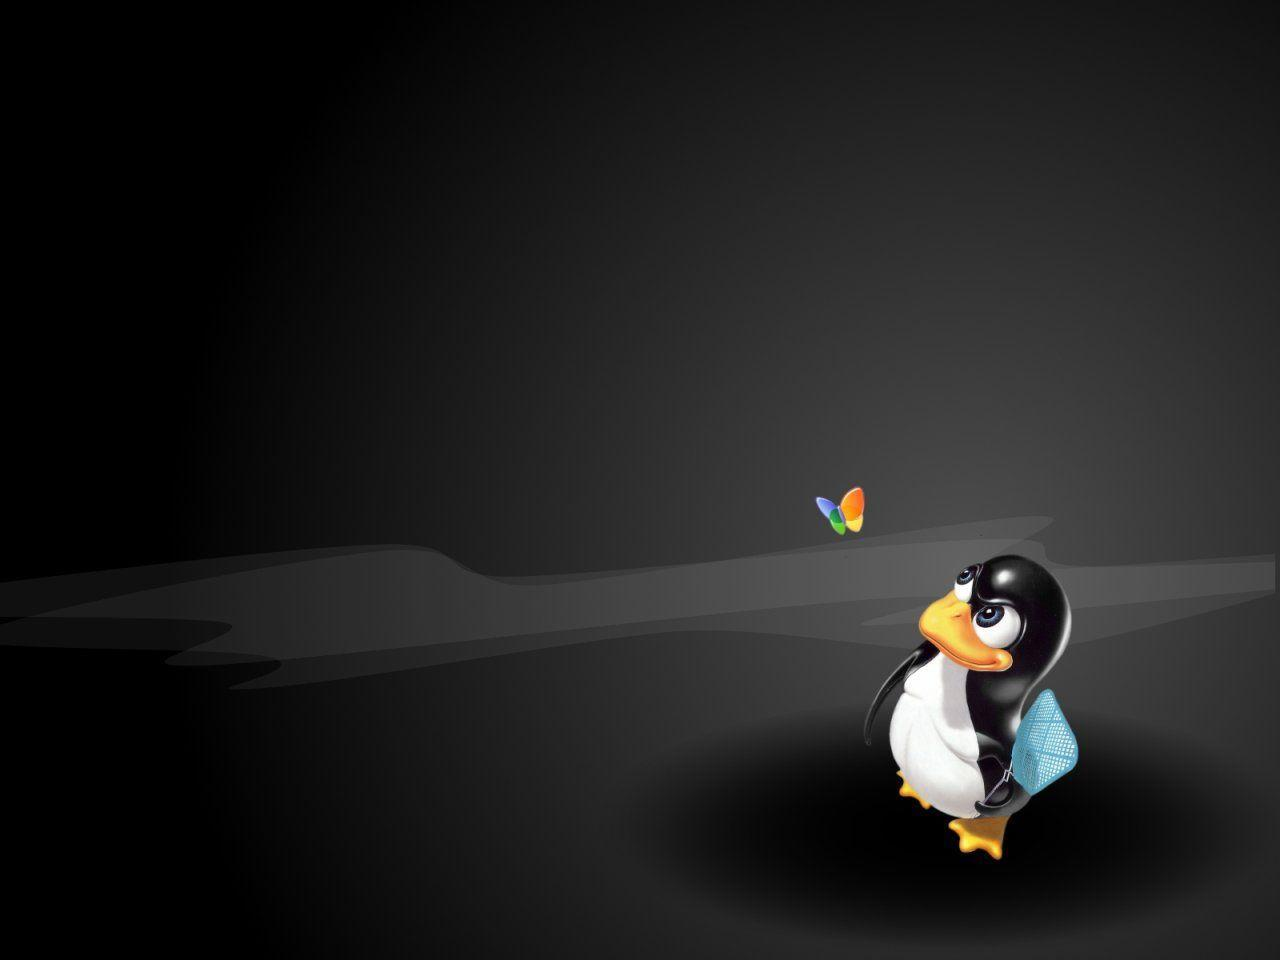 Tux Winfly - Linux Wallpaper | Wallpaper Image